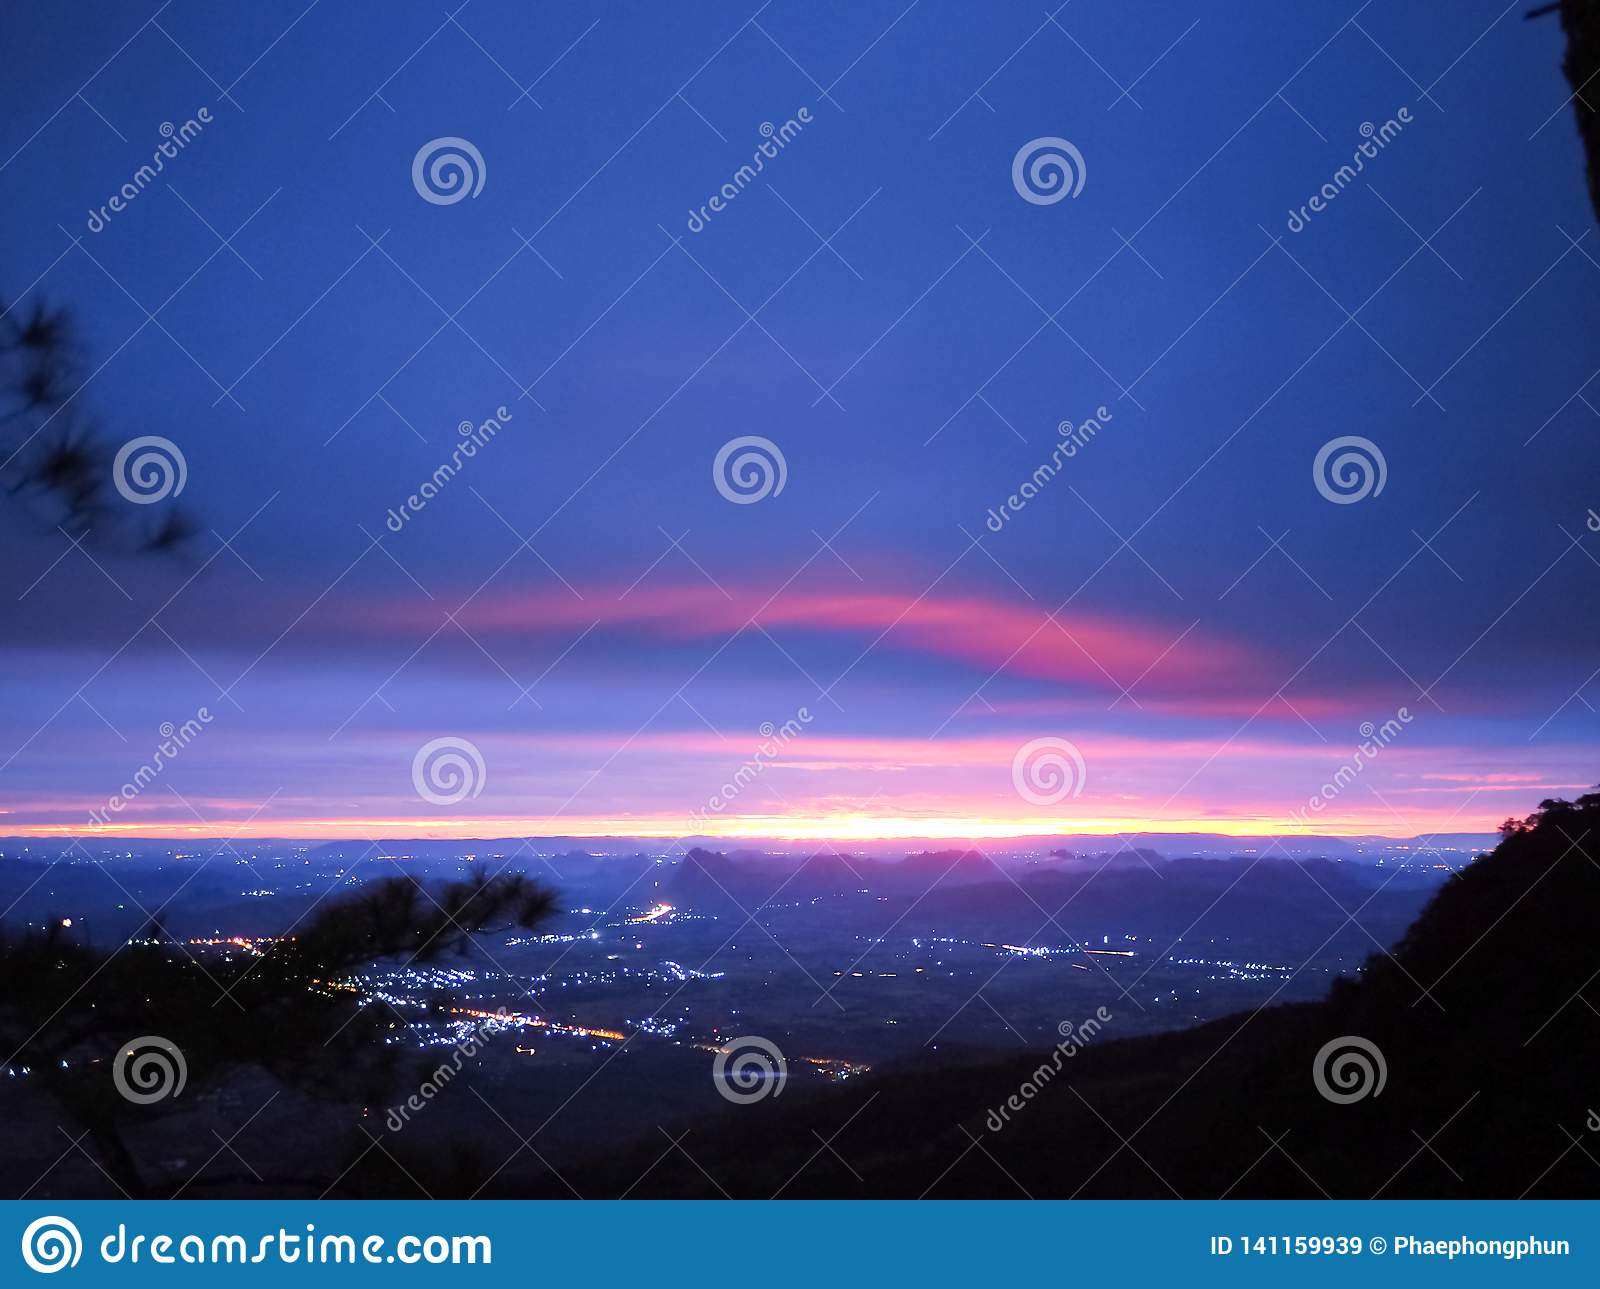 Morning light and colorful sky above mountain